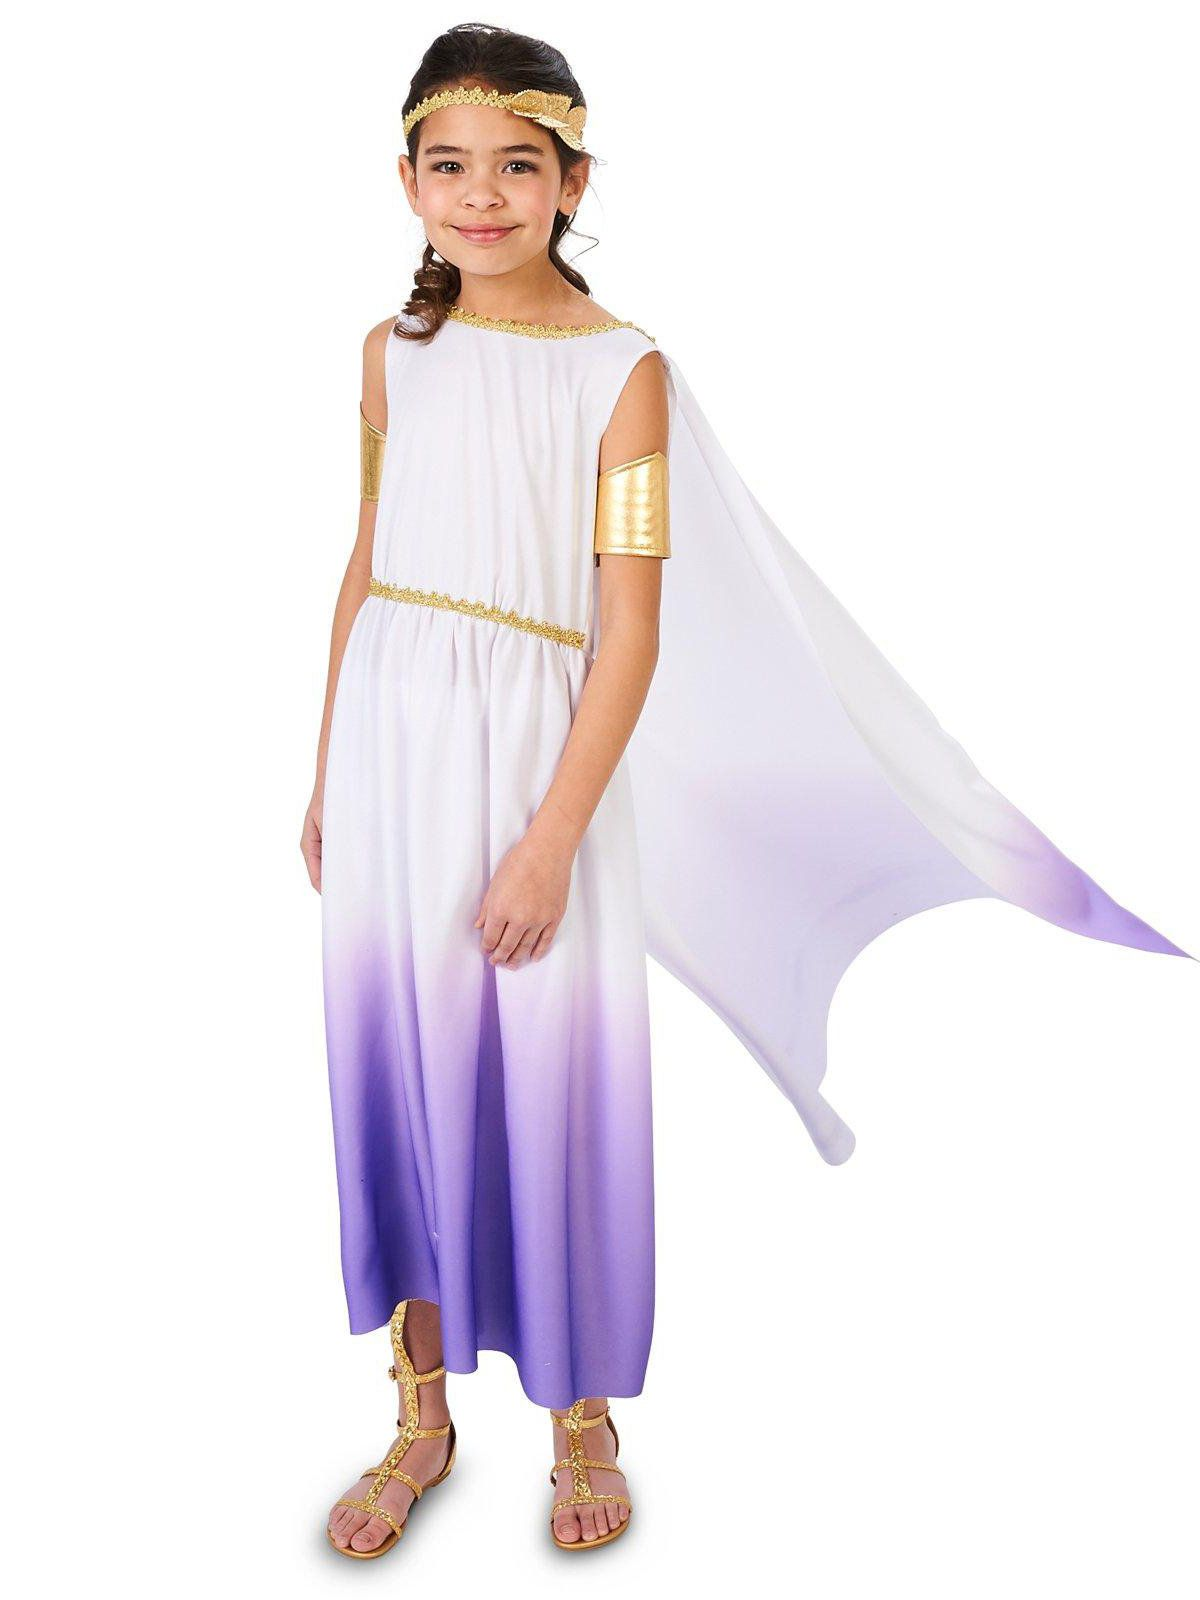 Halloween Costumes For Adults Kids Jolie Clothing Cullen Jumpsuit Maroon L Purple Passion Greek Goddess Child Costume